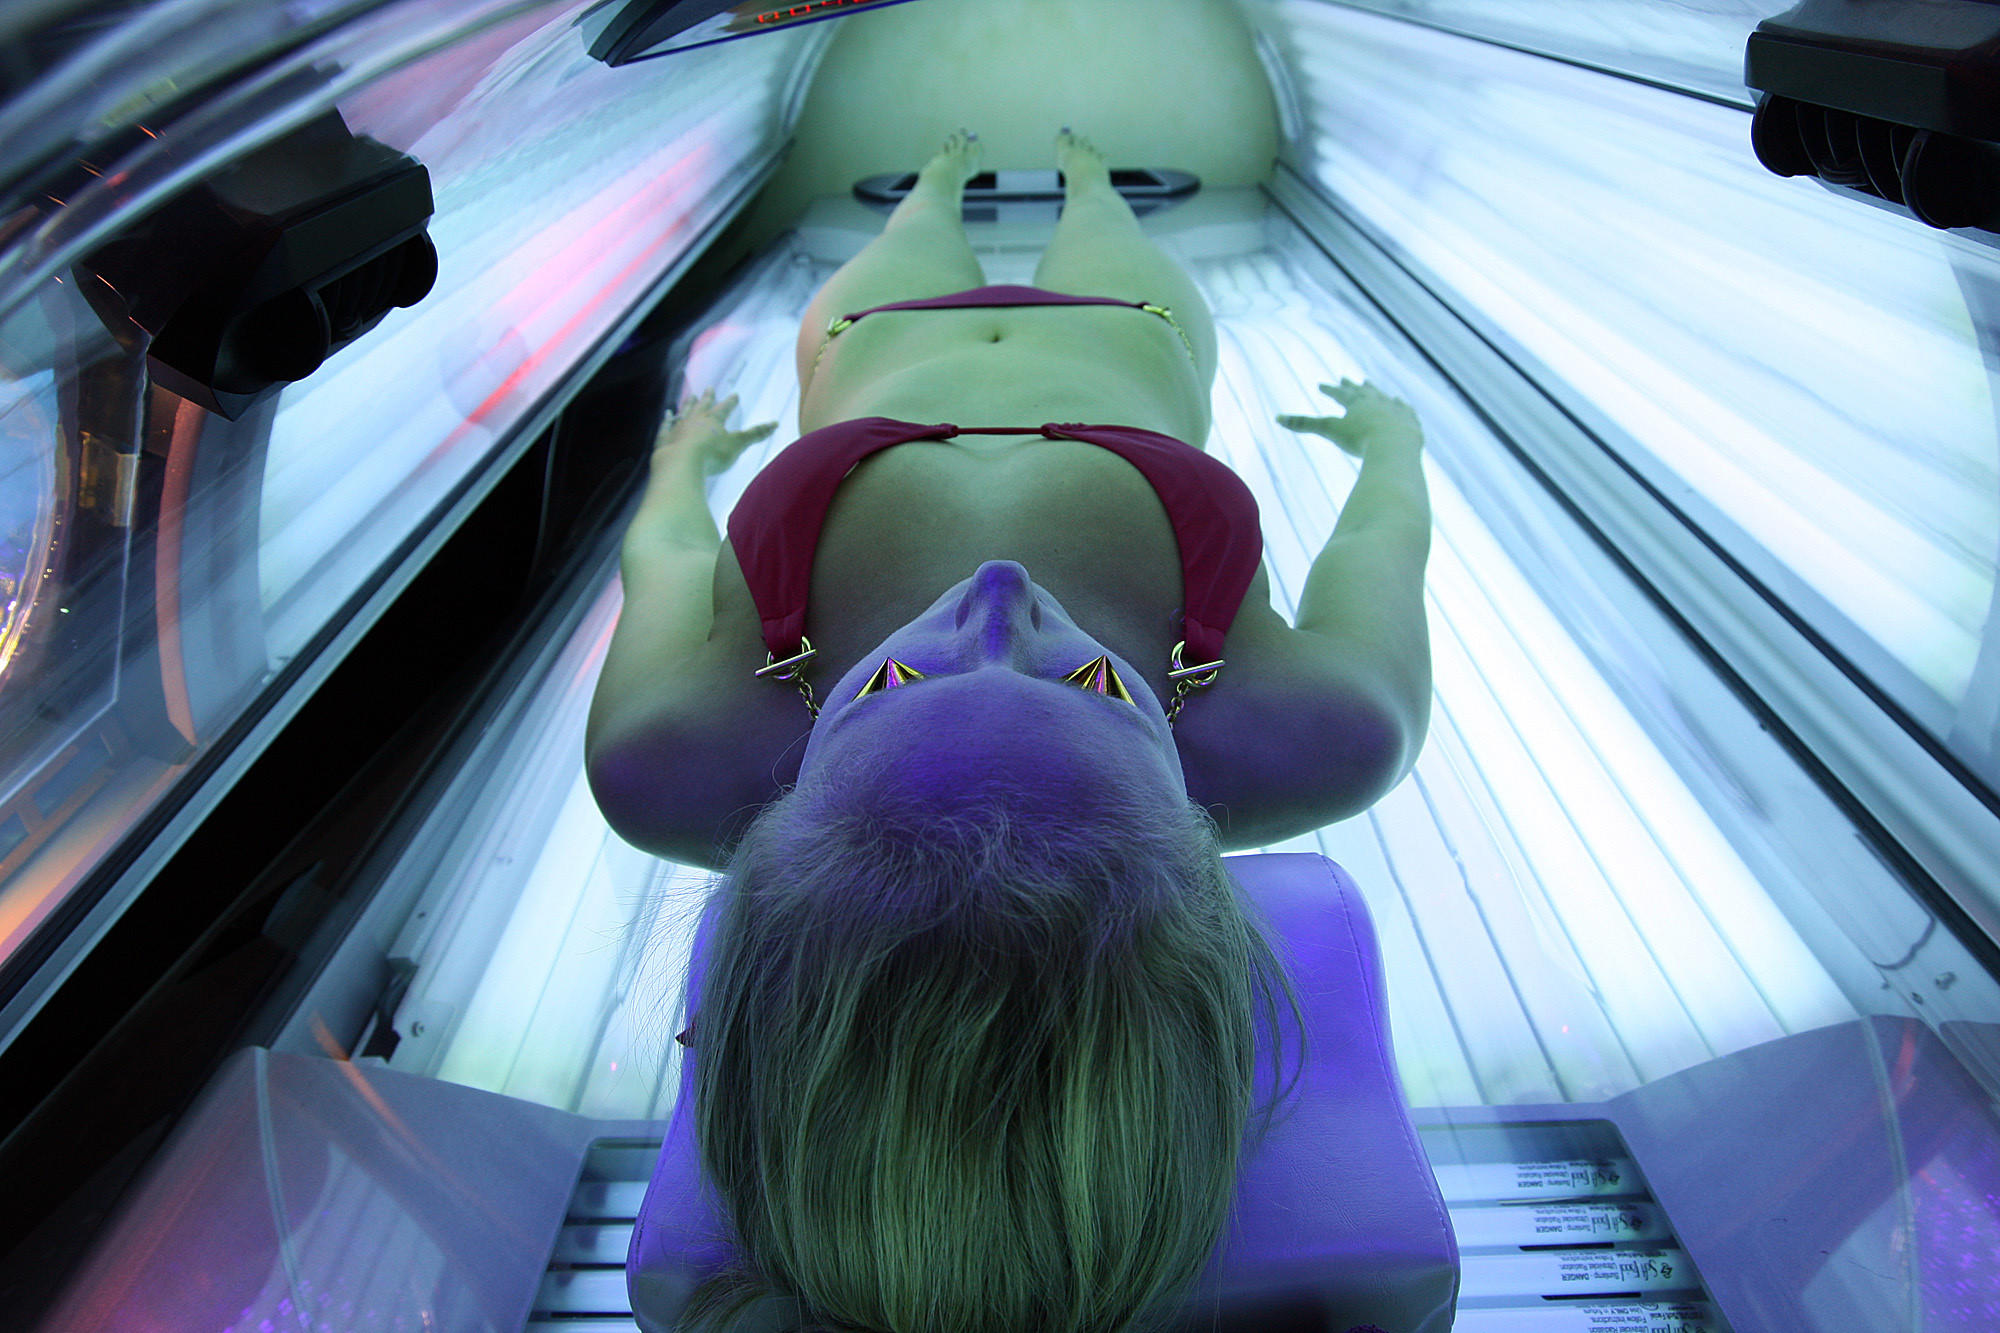 An employee of U-Tan demonstrates the workings of a tanning bed.